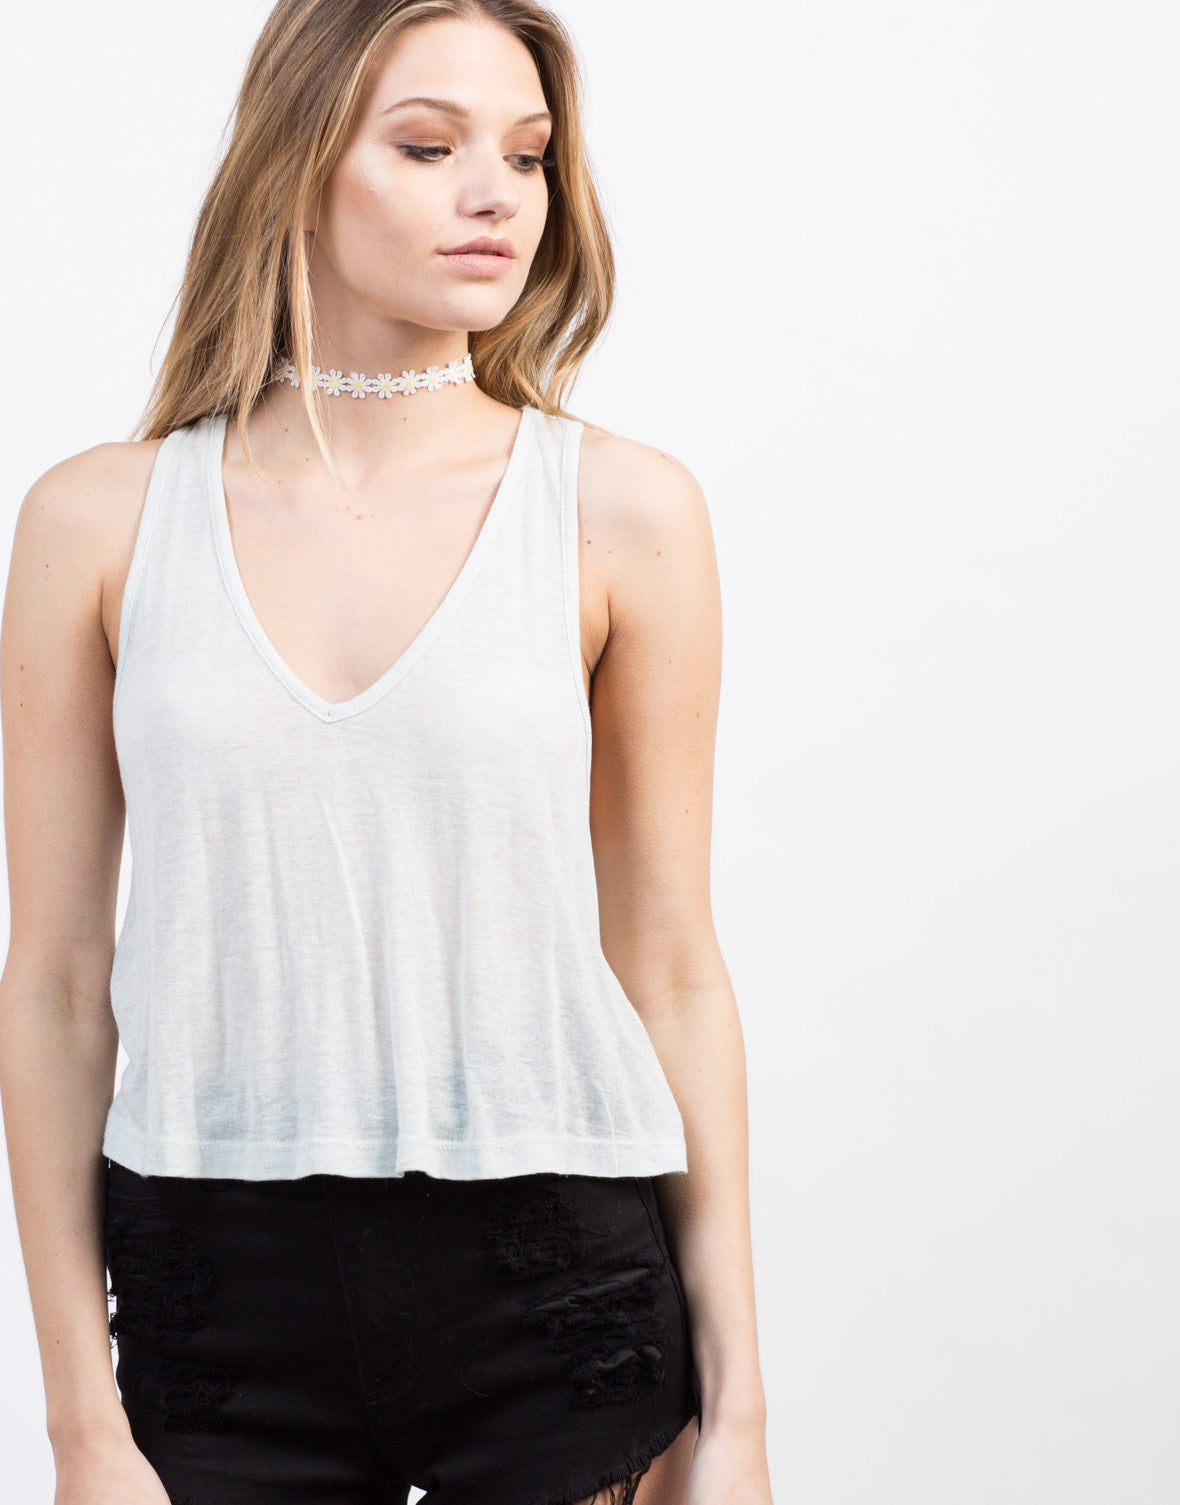 Detail of V-Neck Cropped Tank